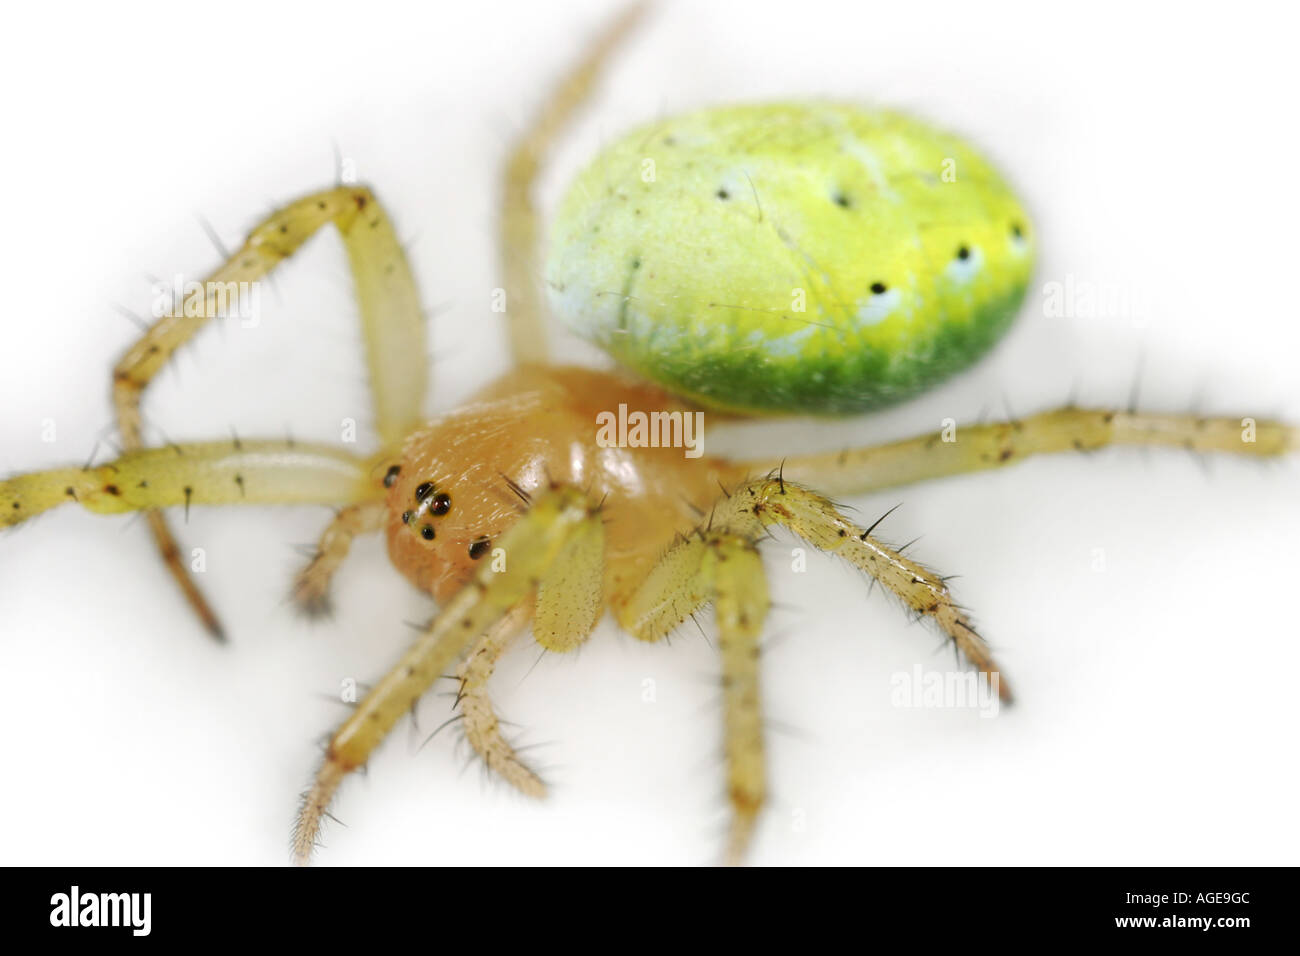 Cucumber Spider, Araniella Cucurbitina, on white background Stock Photo